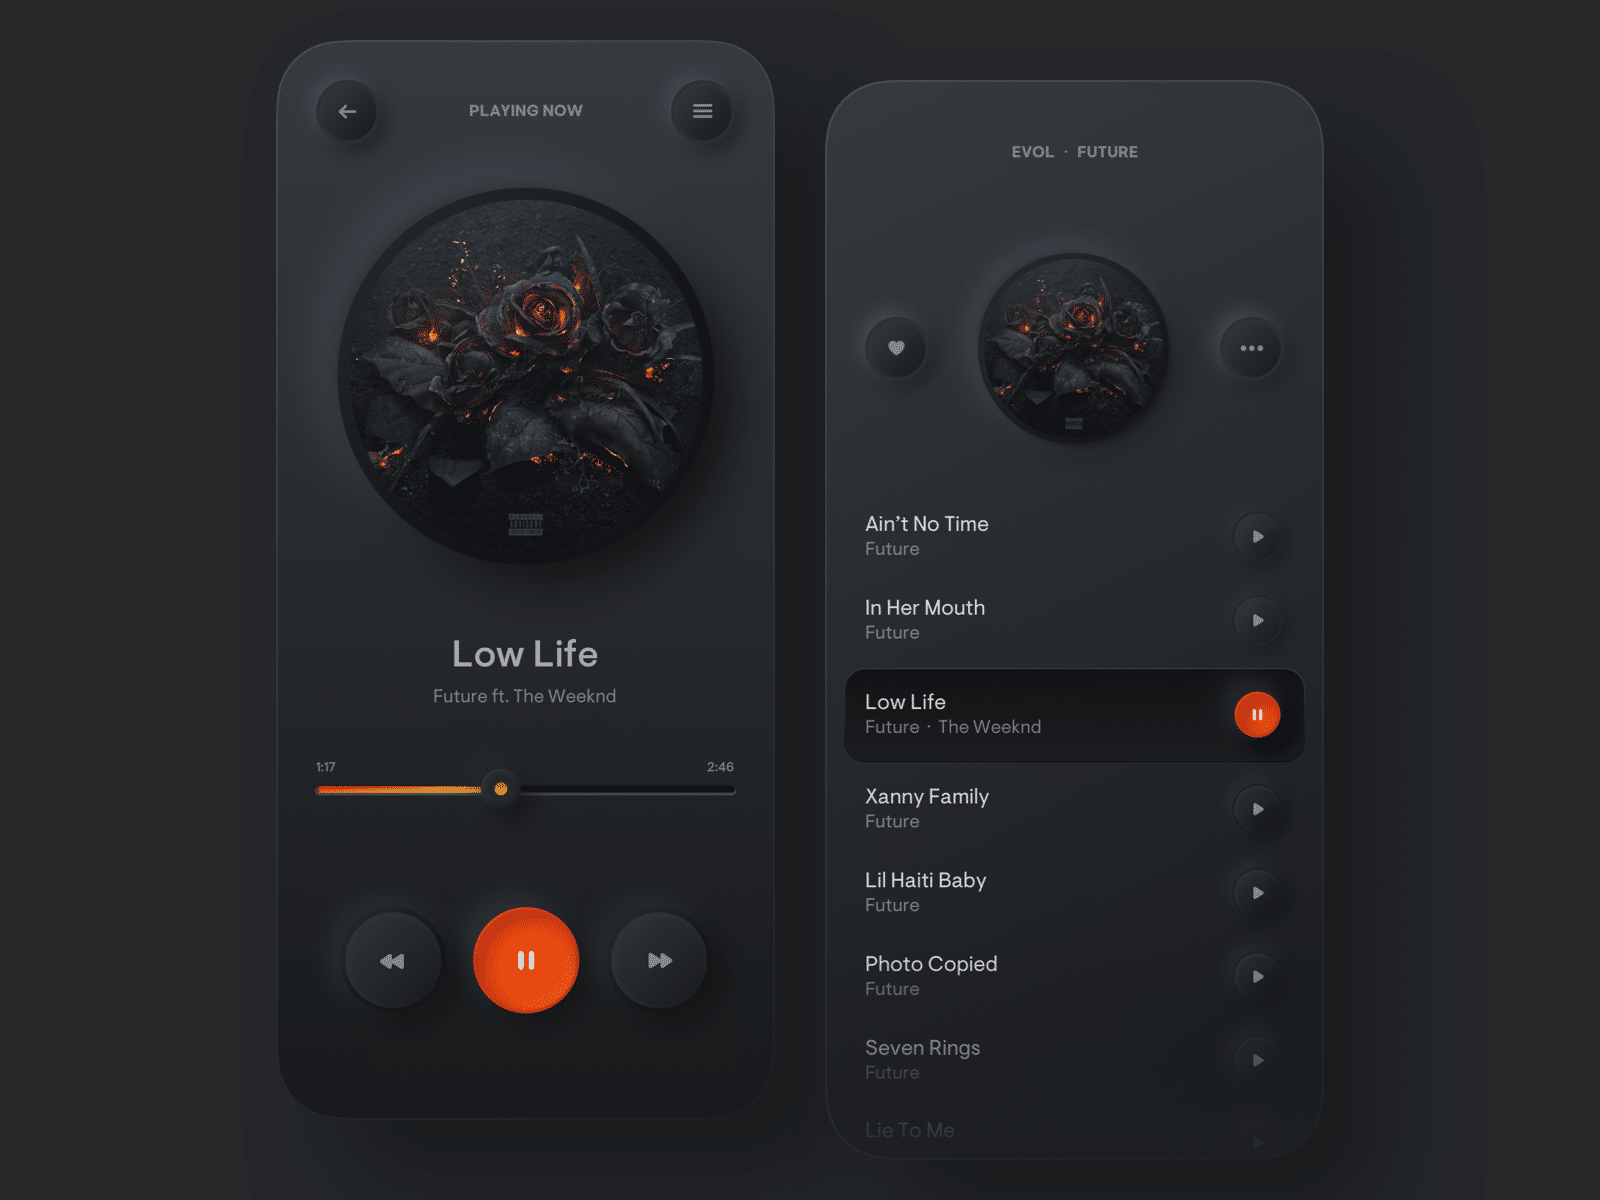 Dark mode design of music player. Orange on black makes for quite okay contrasts.